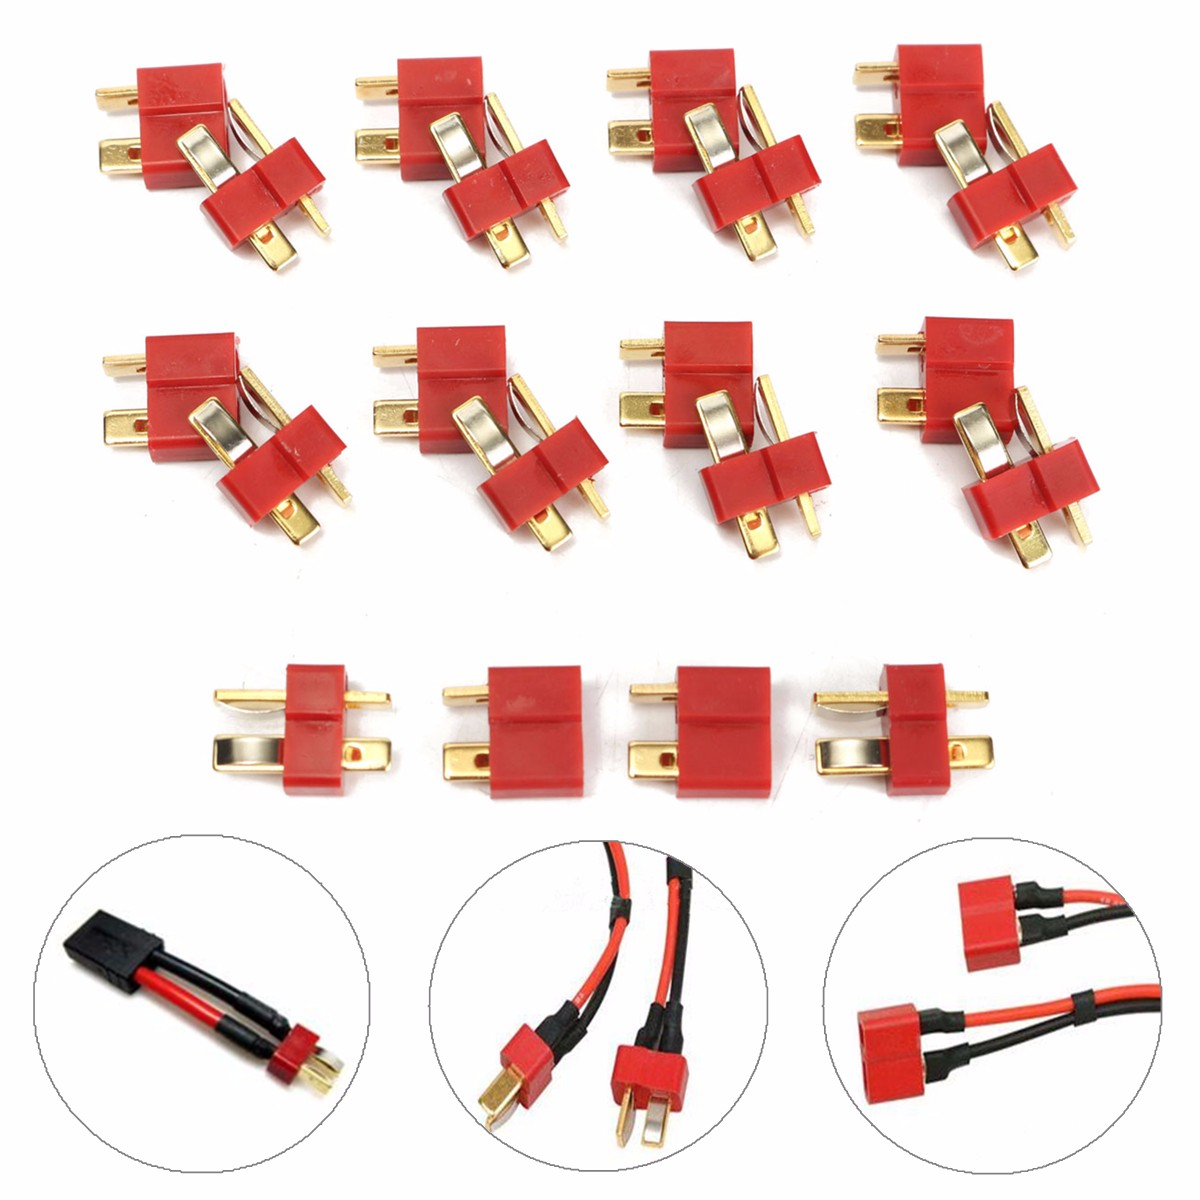 10 Pair T Plug Male and Female Connectors Deans Style For RC LiPo Battery Rc Model t plug male to ec3 female connectors for r c model battery red blue golden 10 pcs